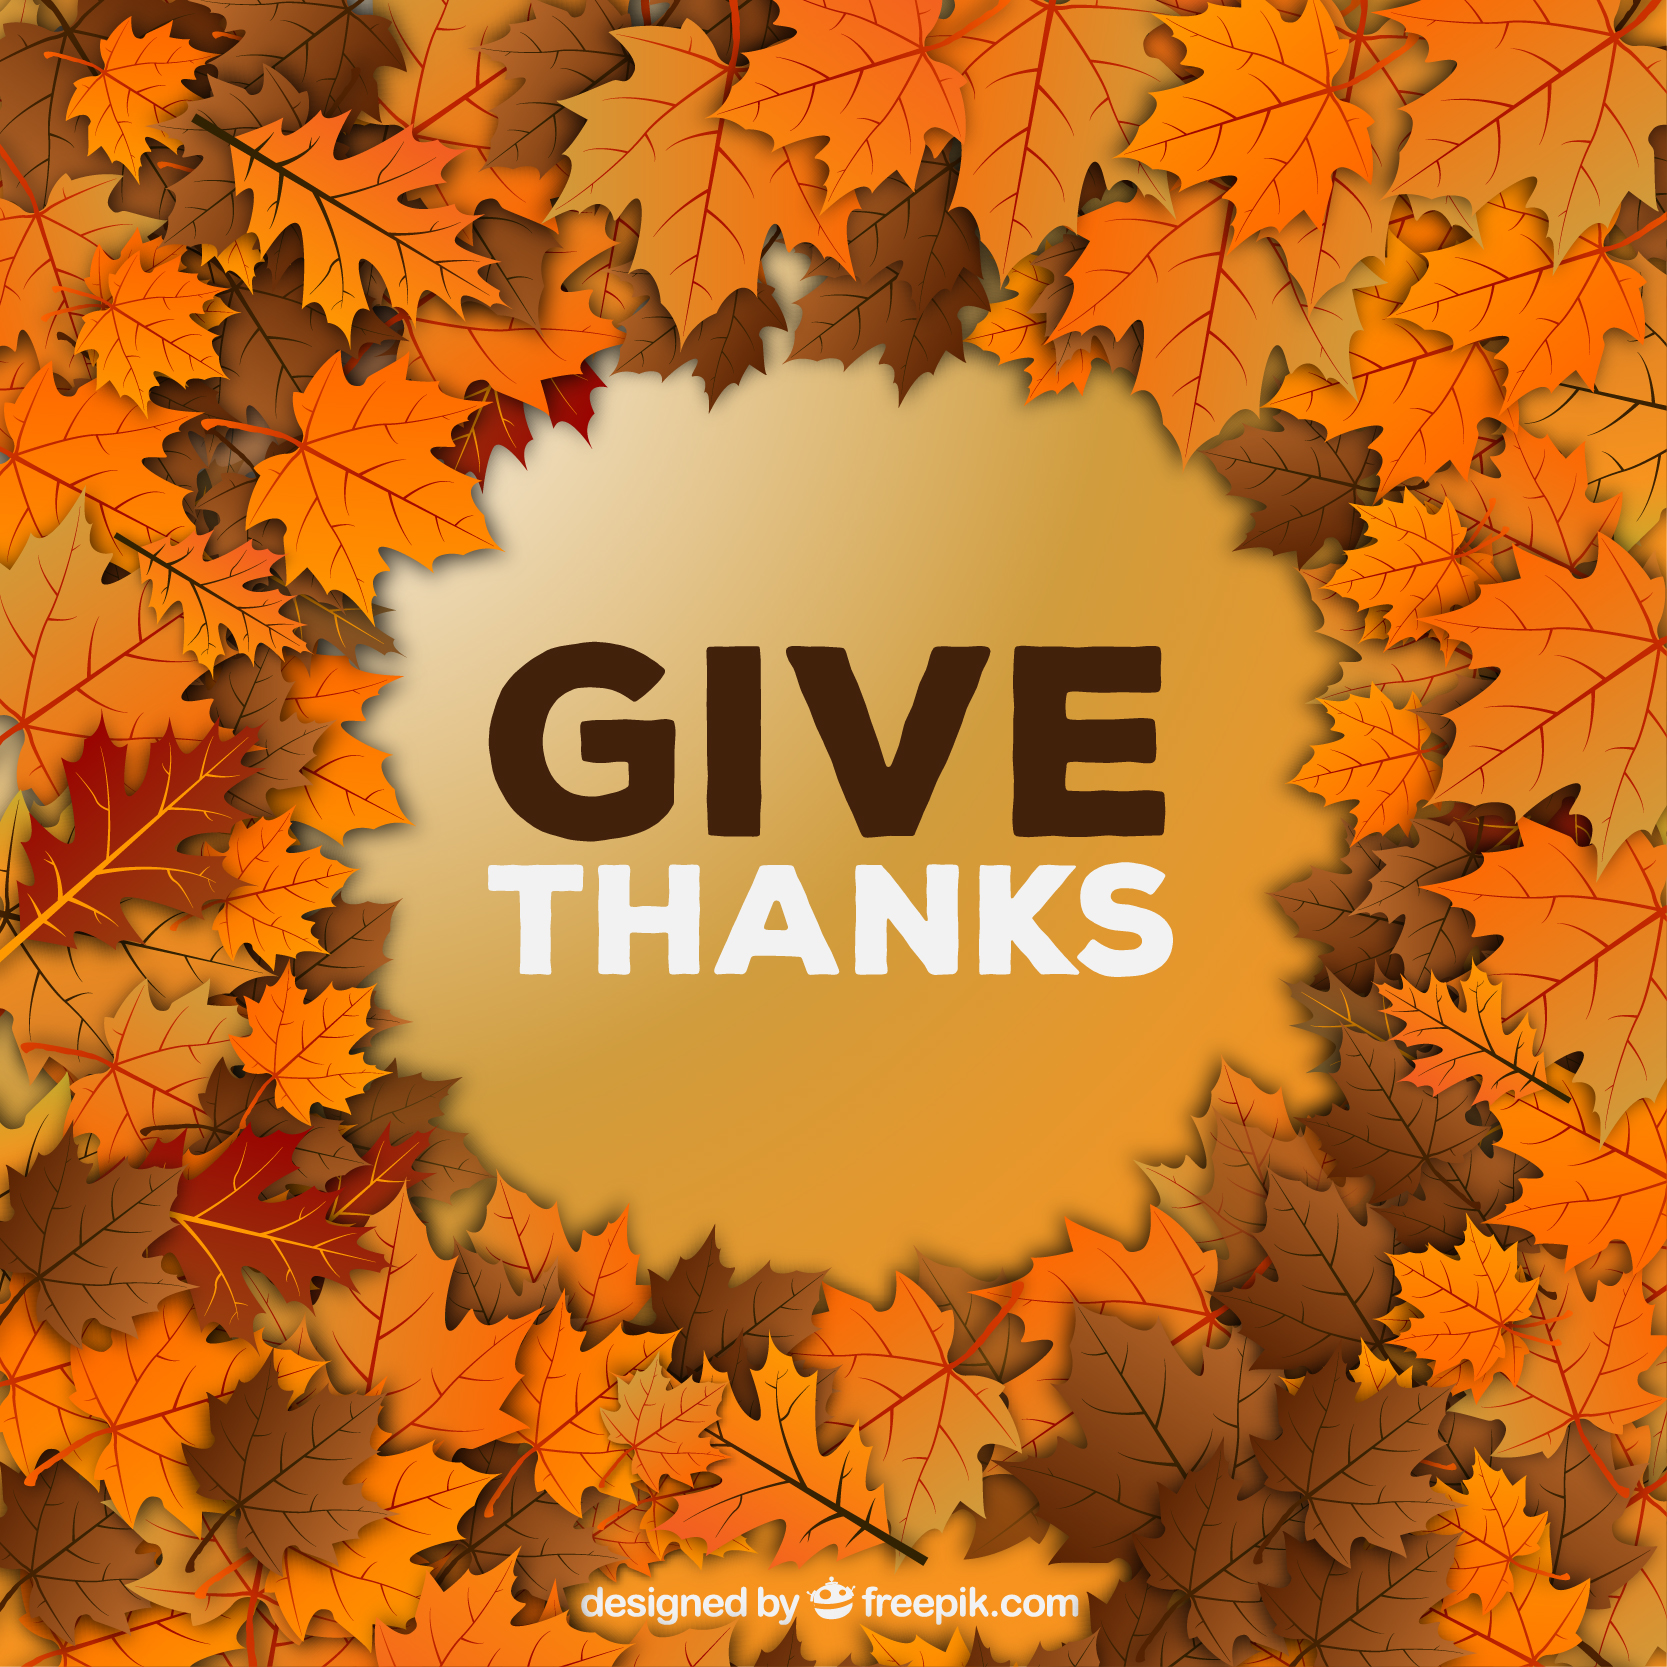 Give Thanks and Be Grateful SpeedClean